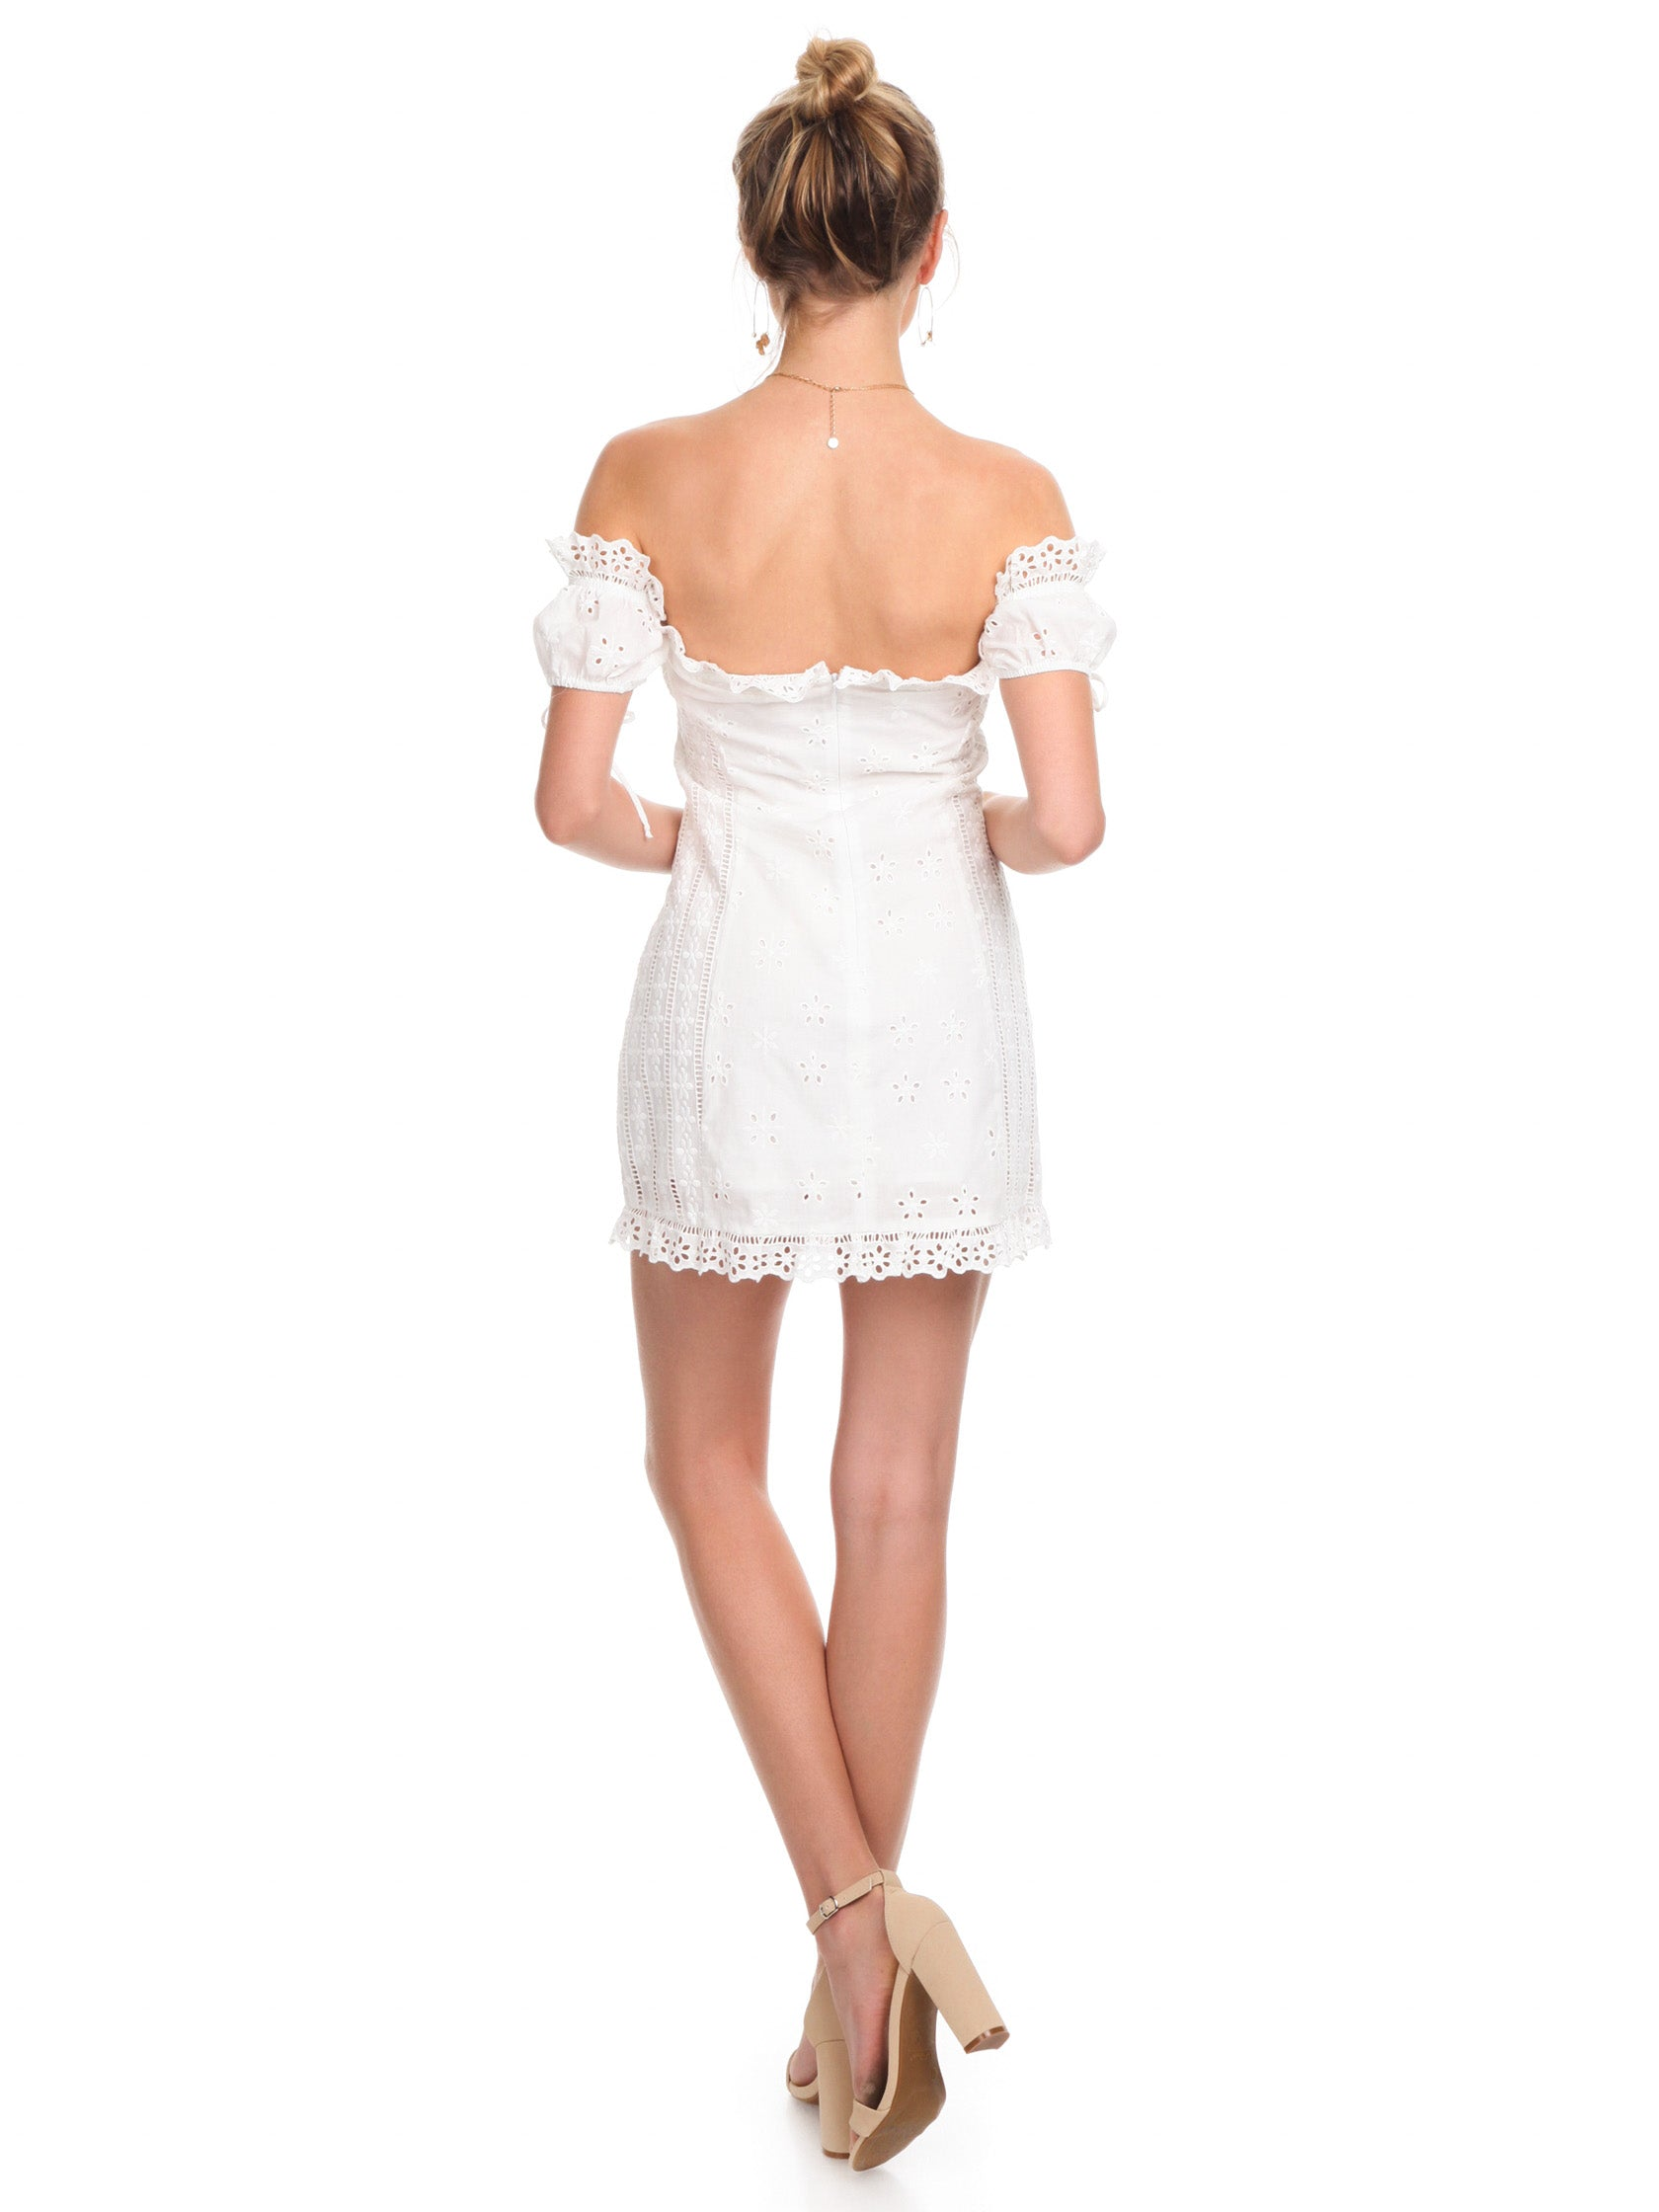 Women wearing a dress rental from For Love & Lemons called Anabelle Eyelet Lace Up Dress